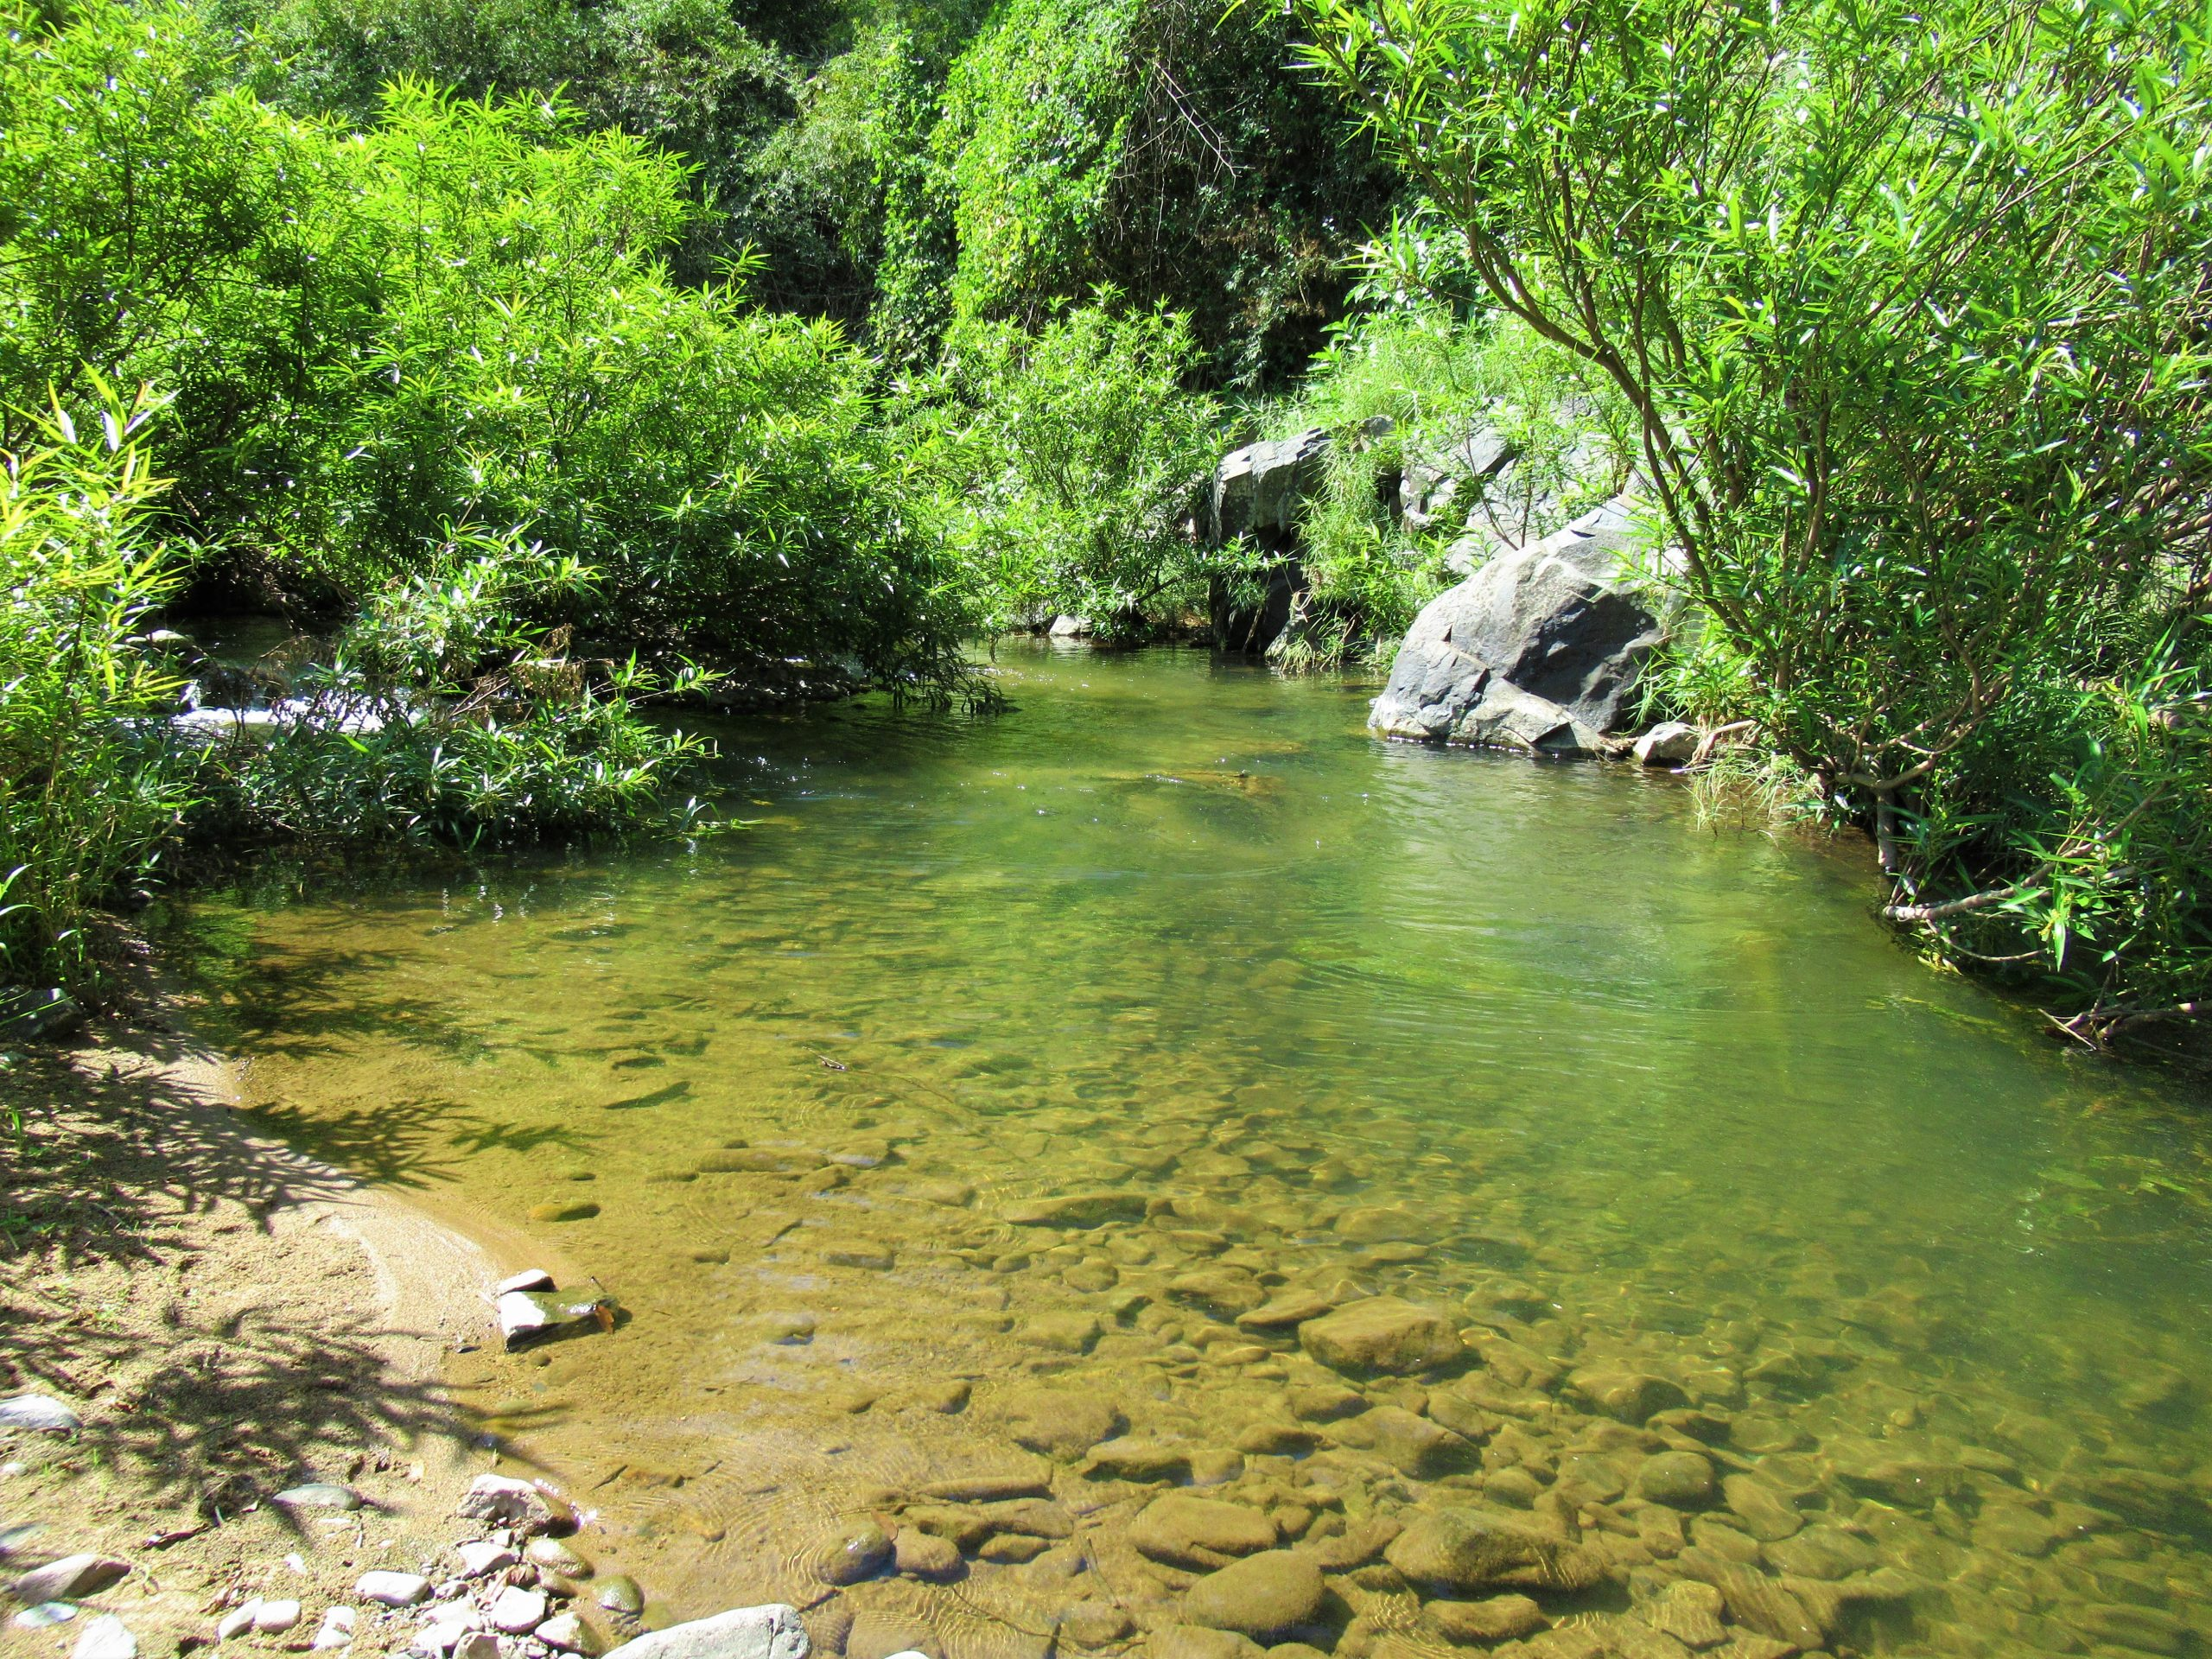 Camping on the Cai River tributaries, Ninh Thuan Province, Vietnam